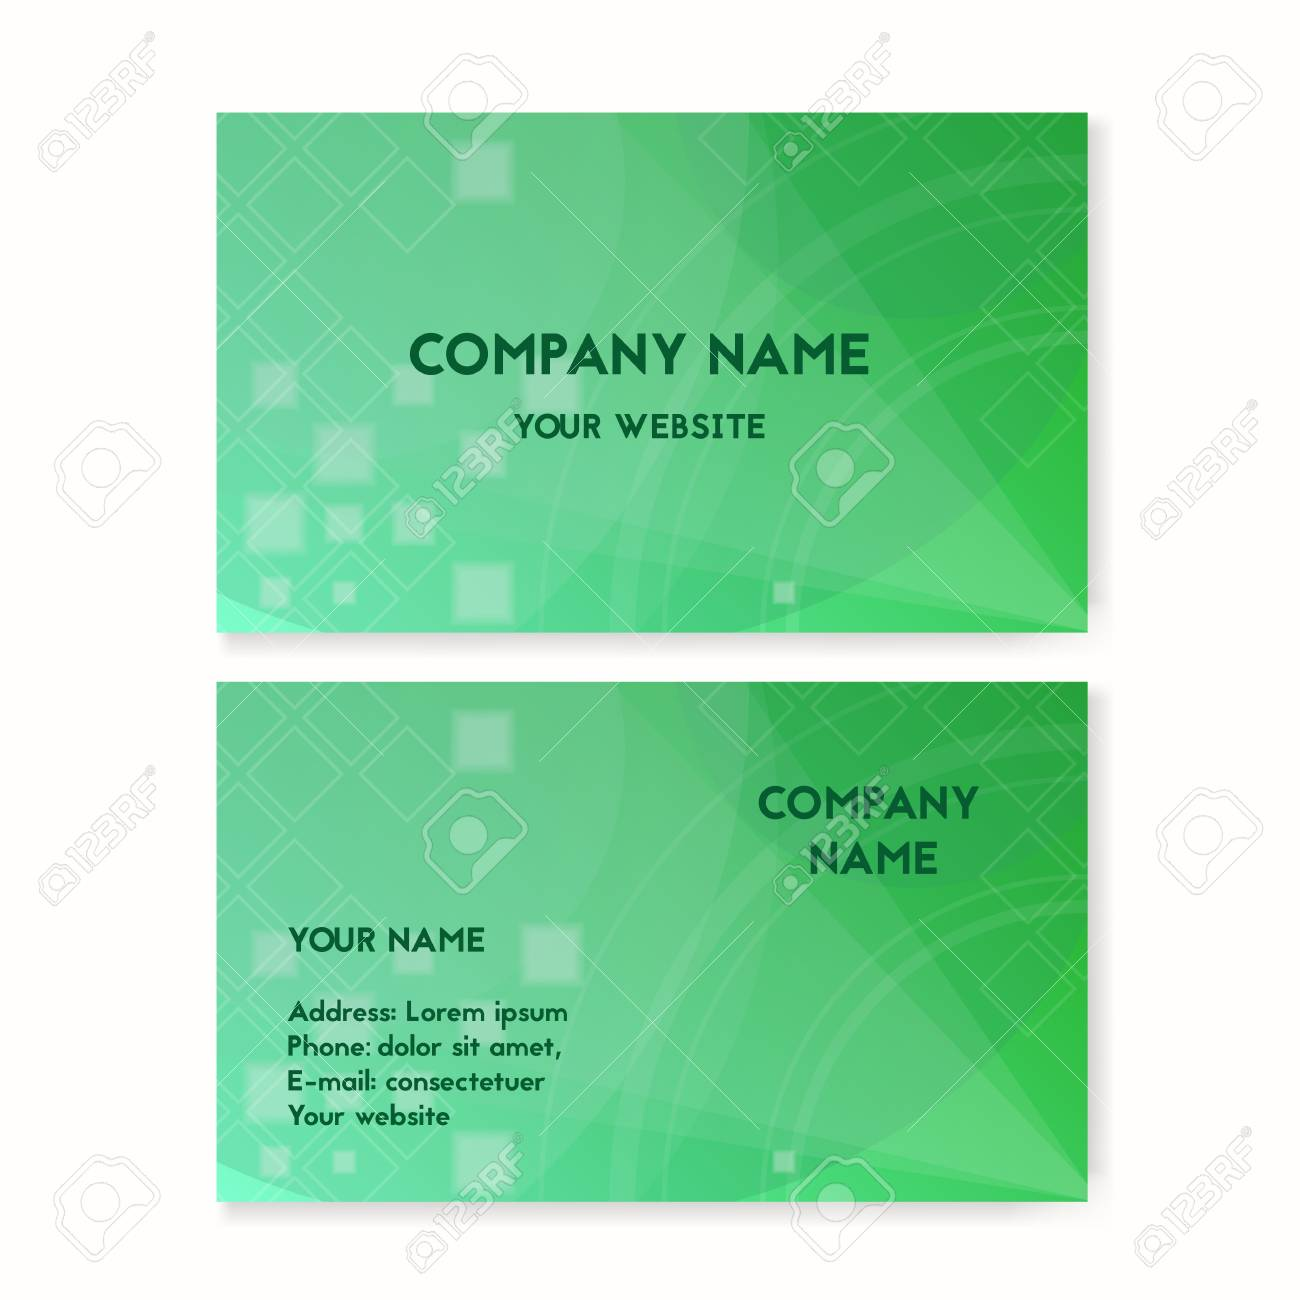 Business Card Green. Plants On The Planet Earth Vector Illustration ...